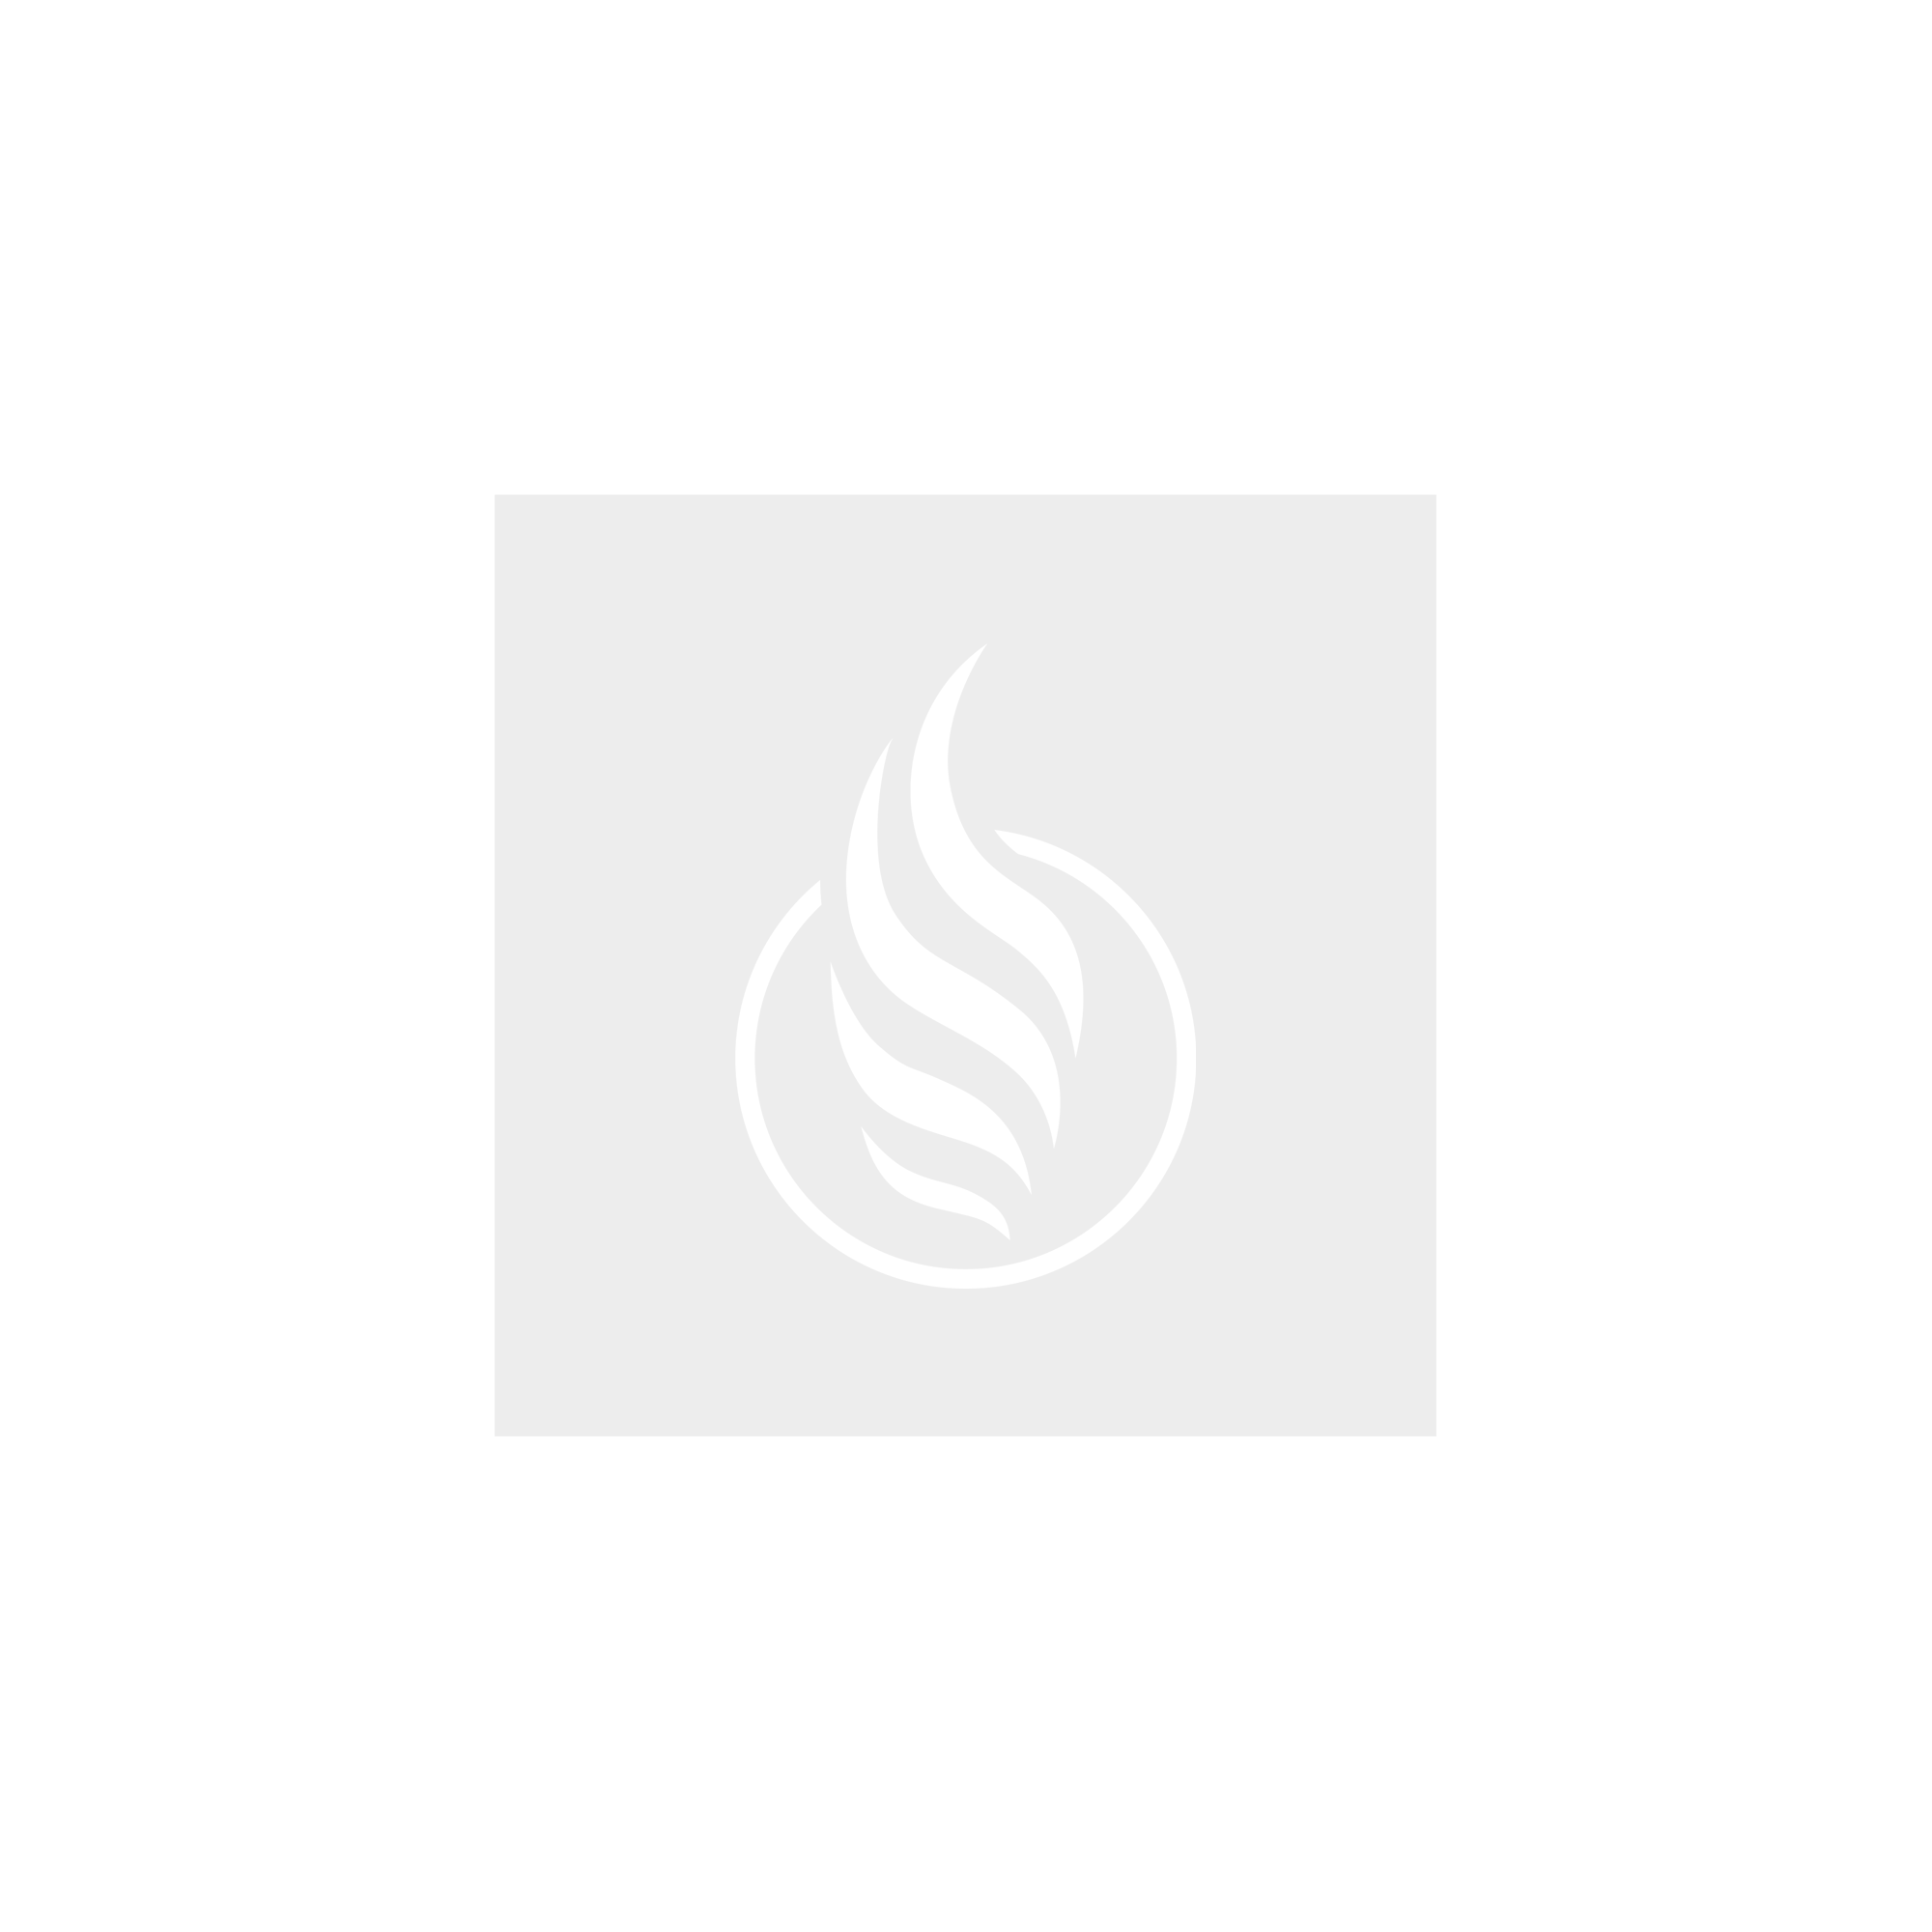 Argus Air Replacement Cartridge (Disposable) 0.8ohm 2 pack